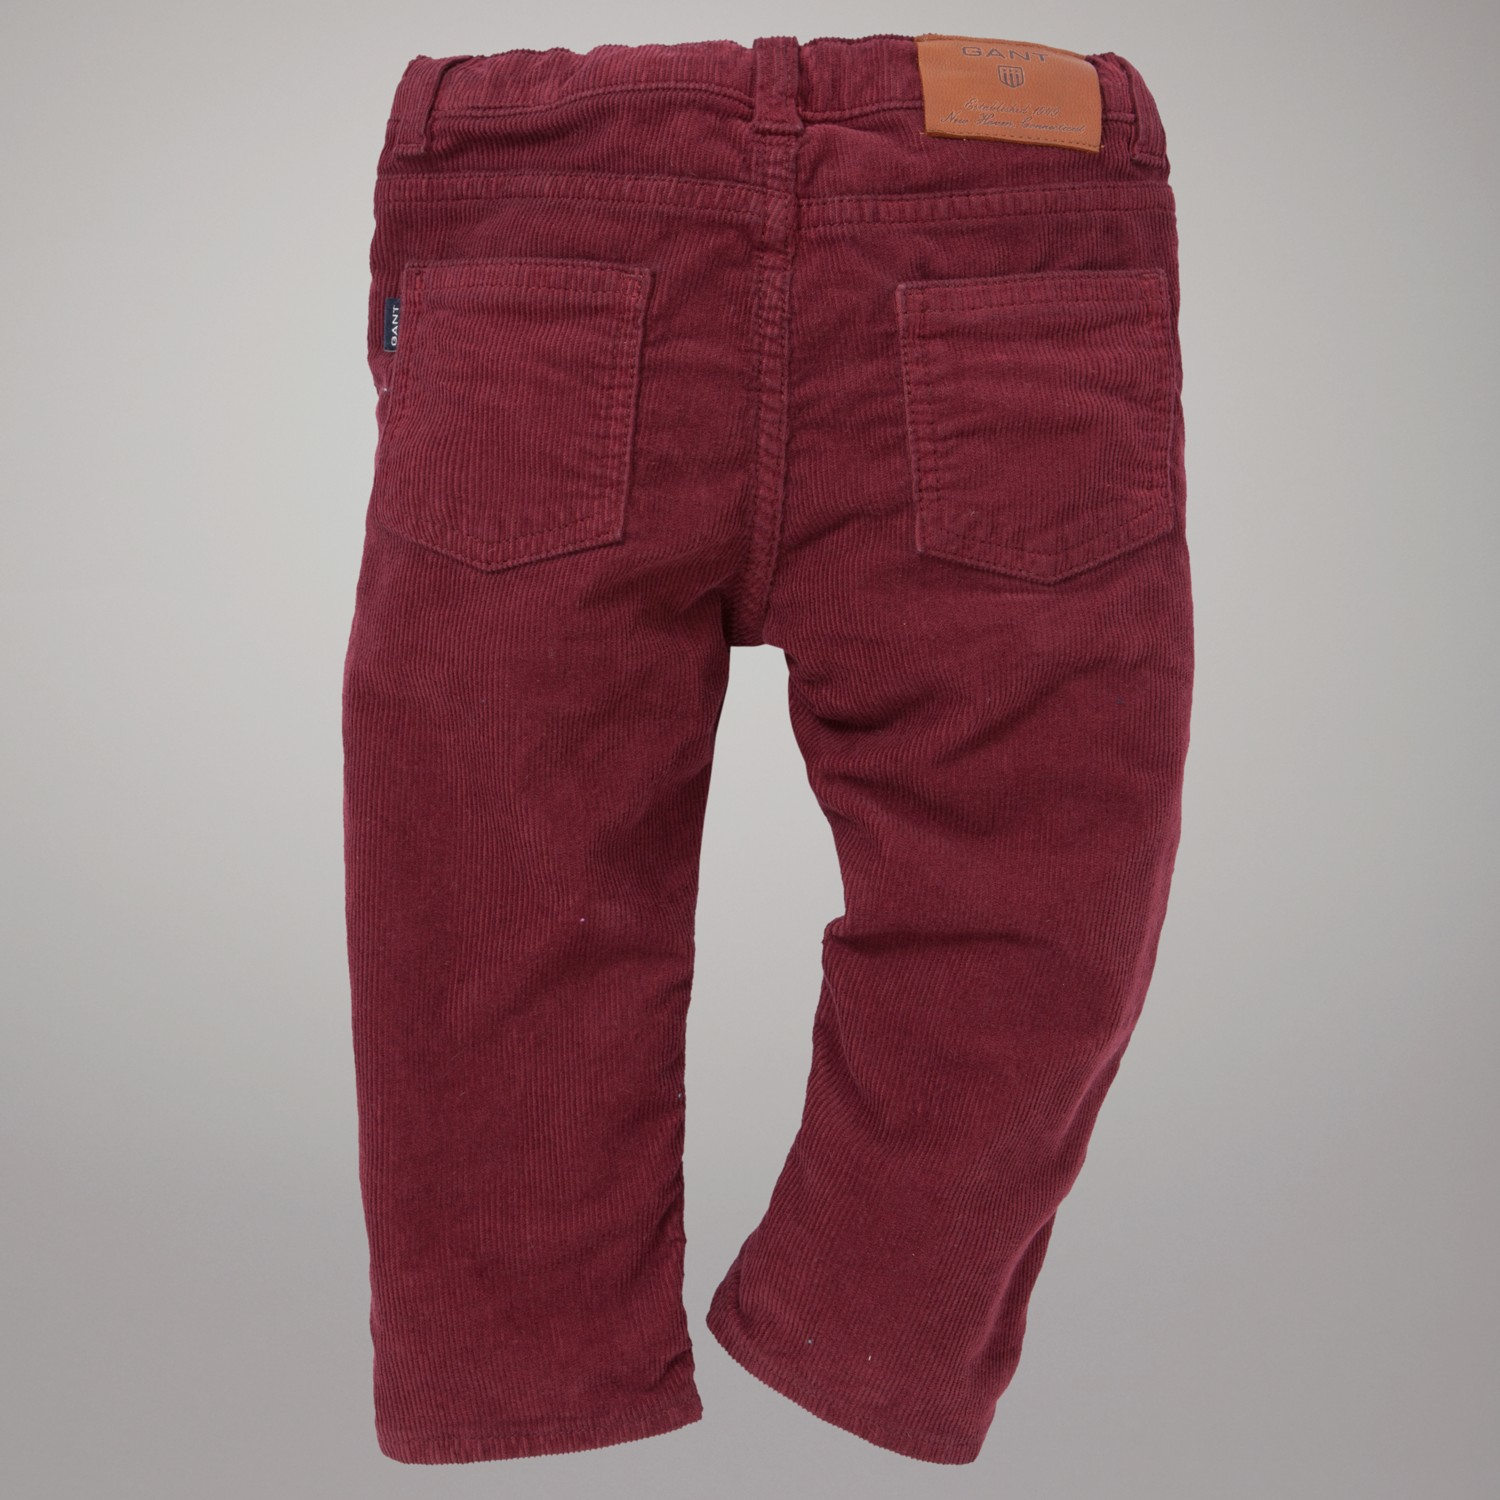 GANT Corduroy Trousers in Burgundy (Red) for Men